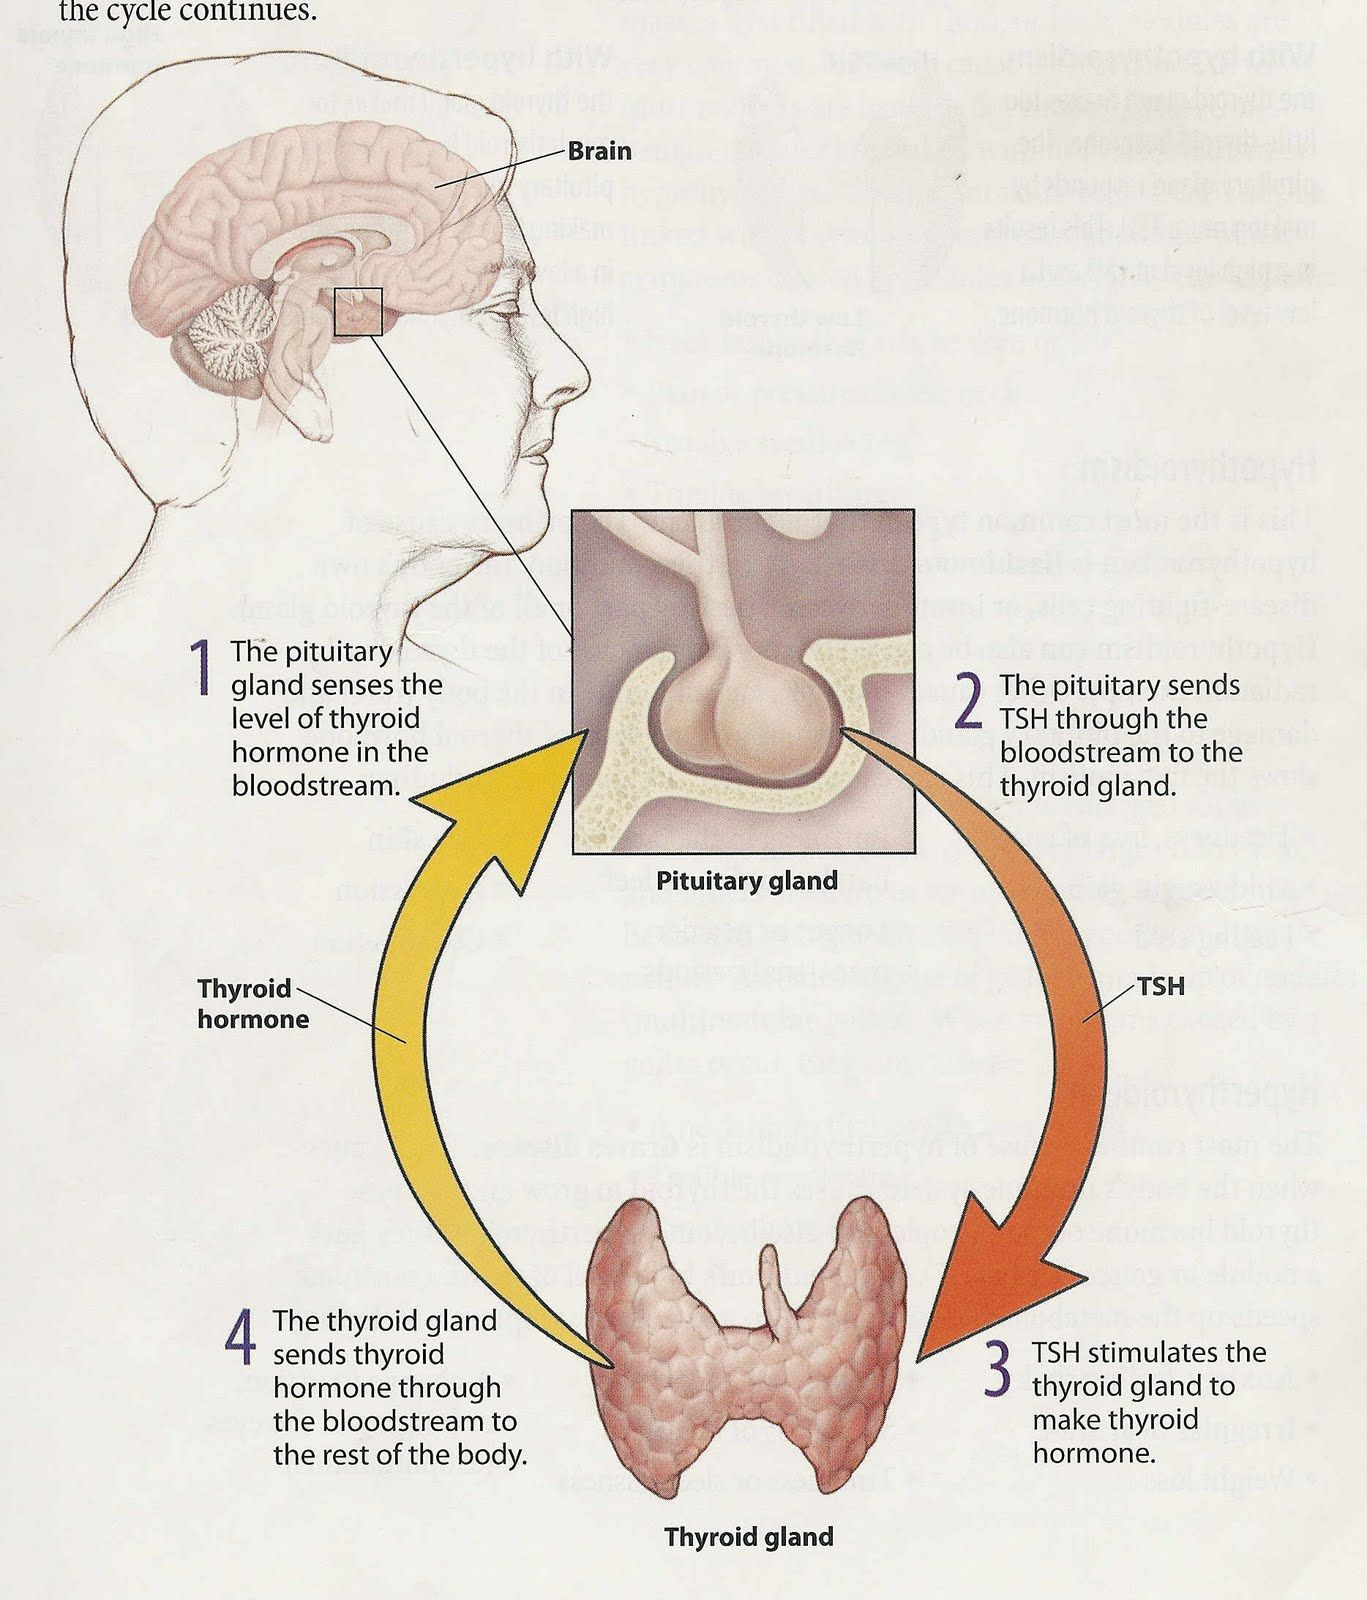 Pituitary Here S How They Work The Pituitary Gland Monitors The